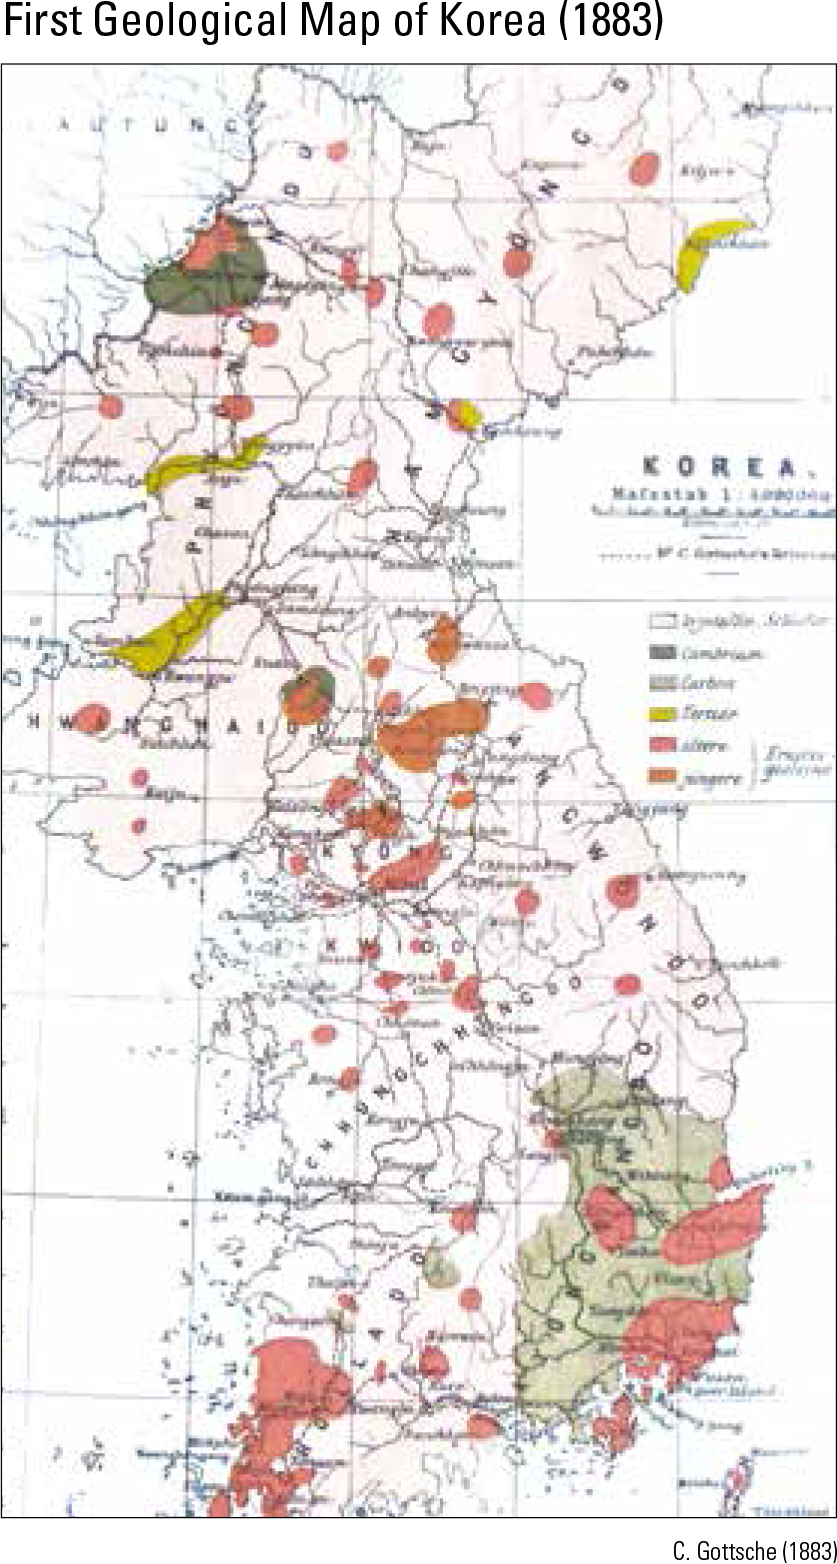 First Geological Map of Korea (1883)